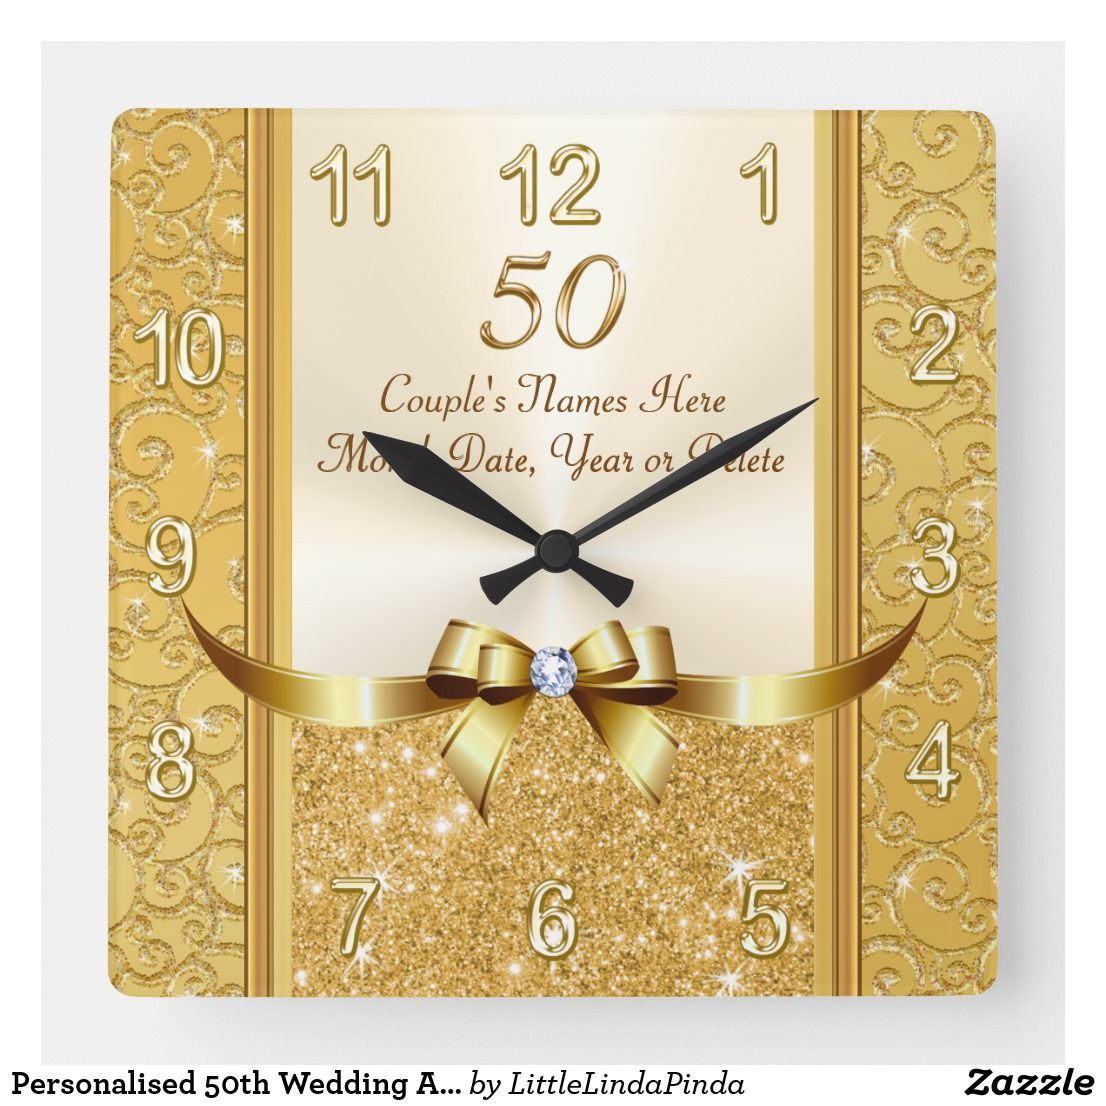 Personalised 50th Wedding Anniversary Gifts Clock Zazzle Com 50 Wedding Anniversary Gifts Golden Anniversary Gifts Fiftieth Wedding Anniversary Gifts